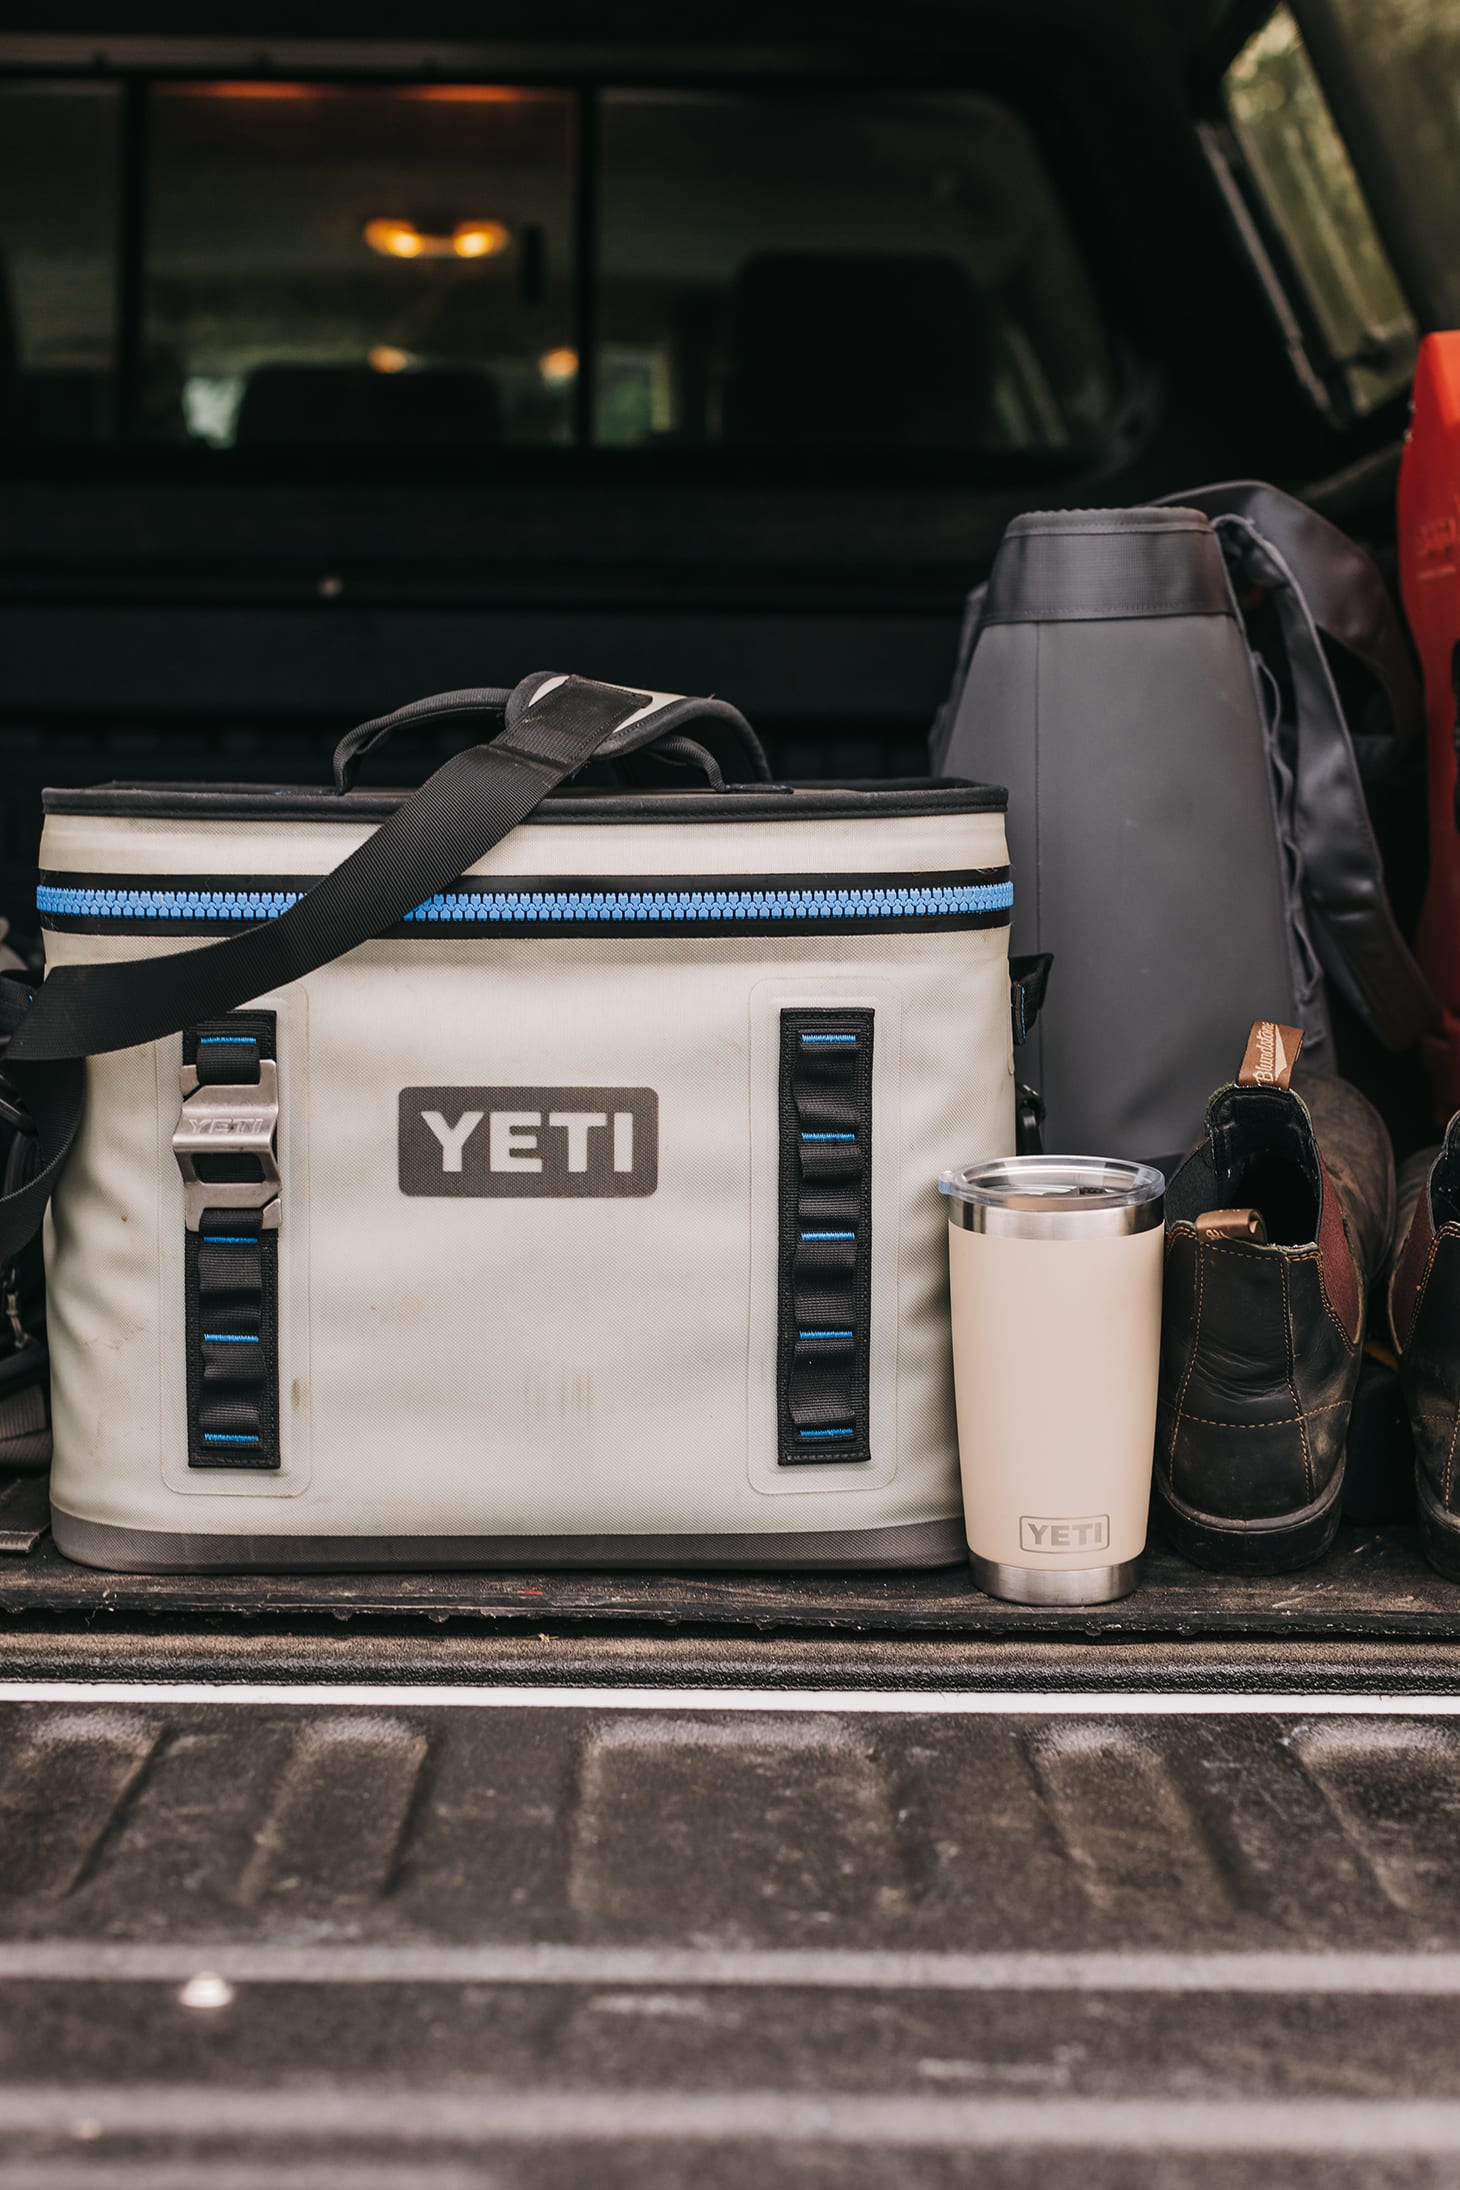 The ultimate Father's Day Gift, a YETI cooler!